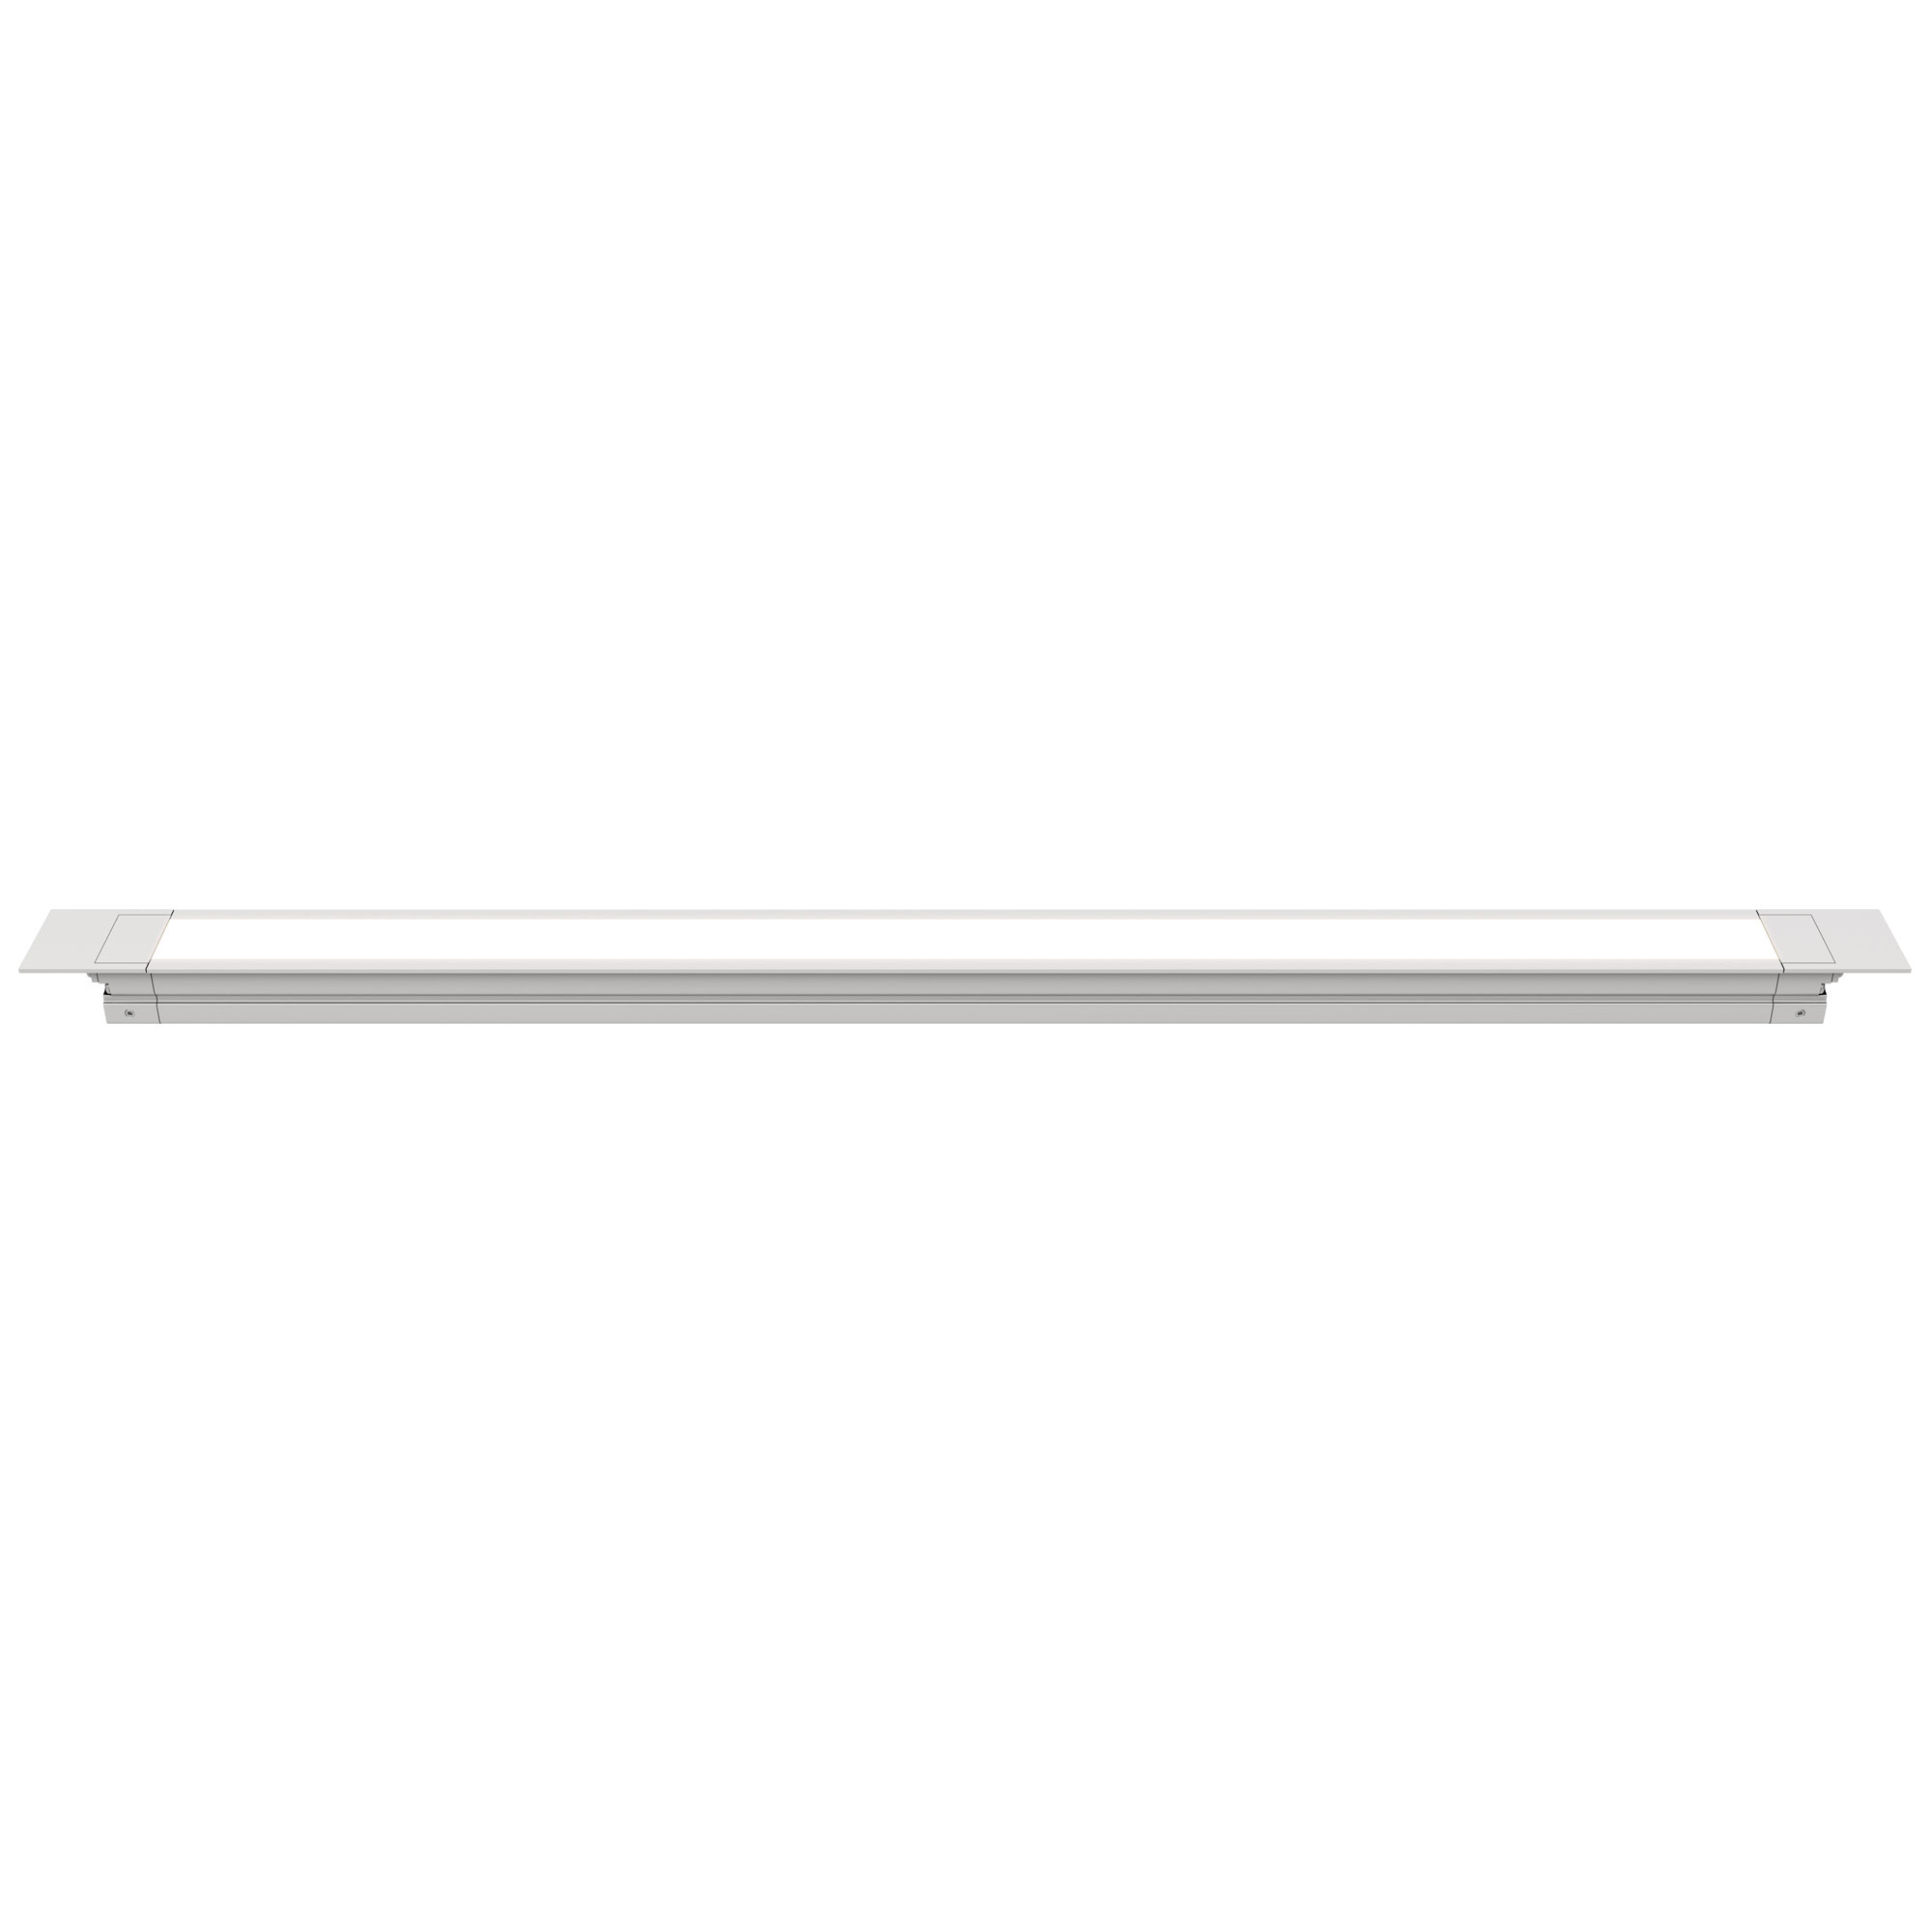 Light Channel Millwork 2.3W 24V